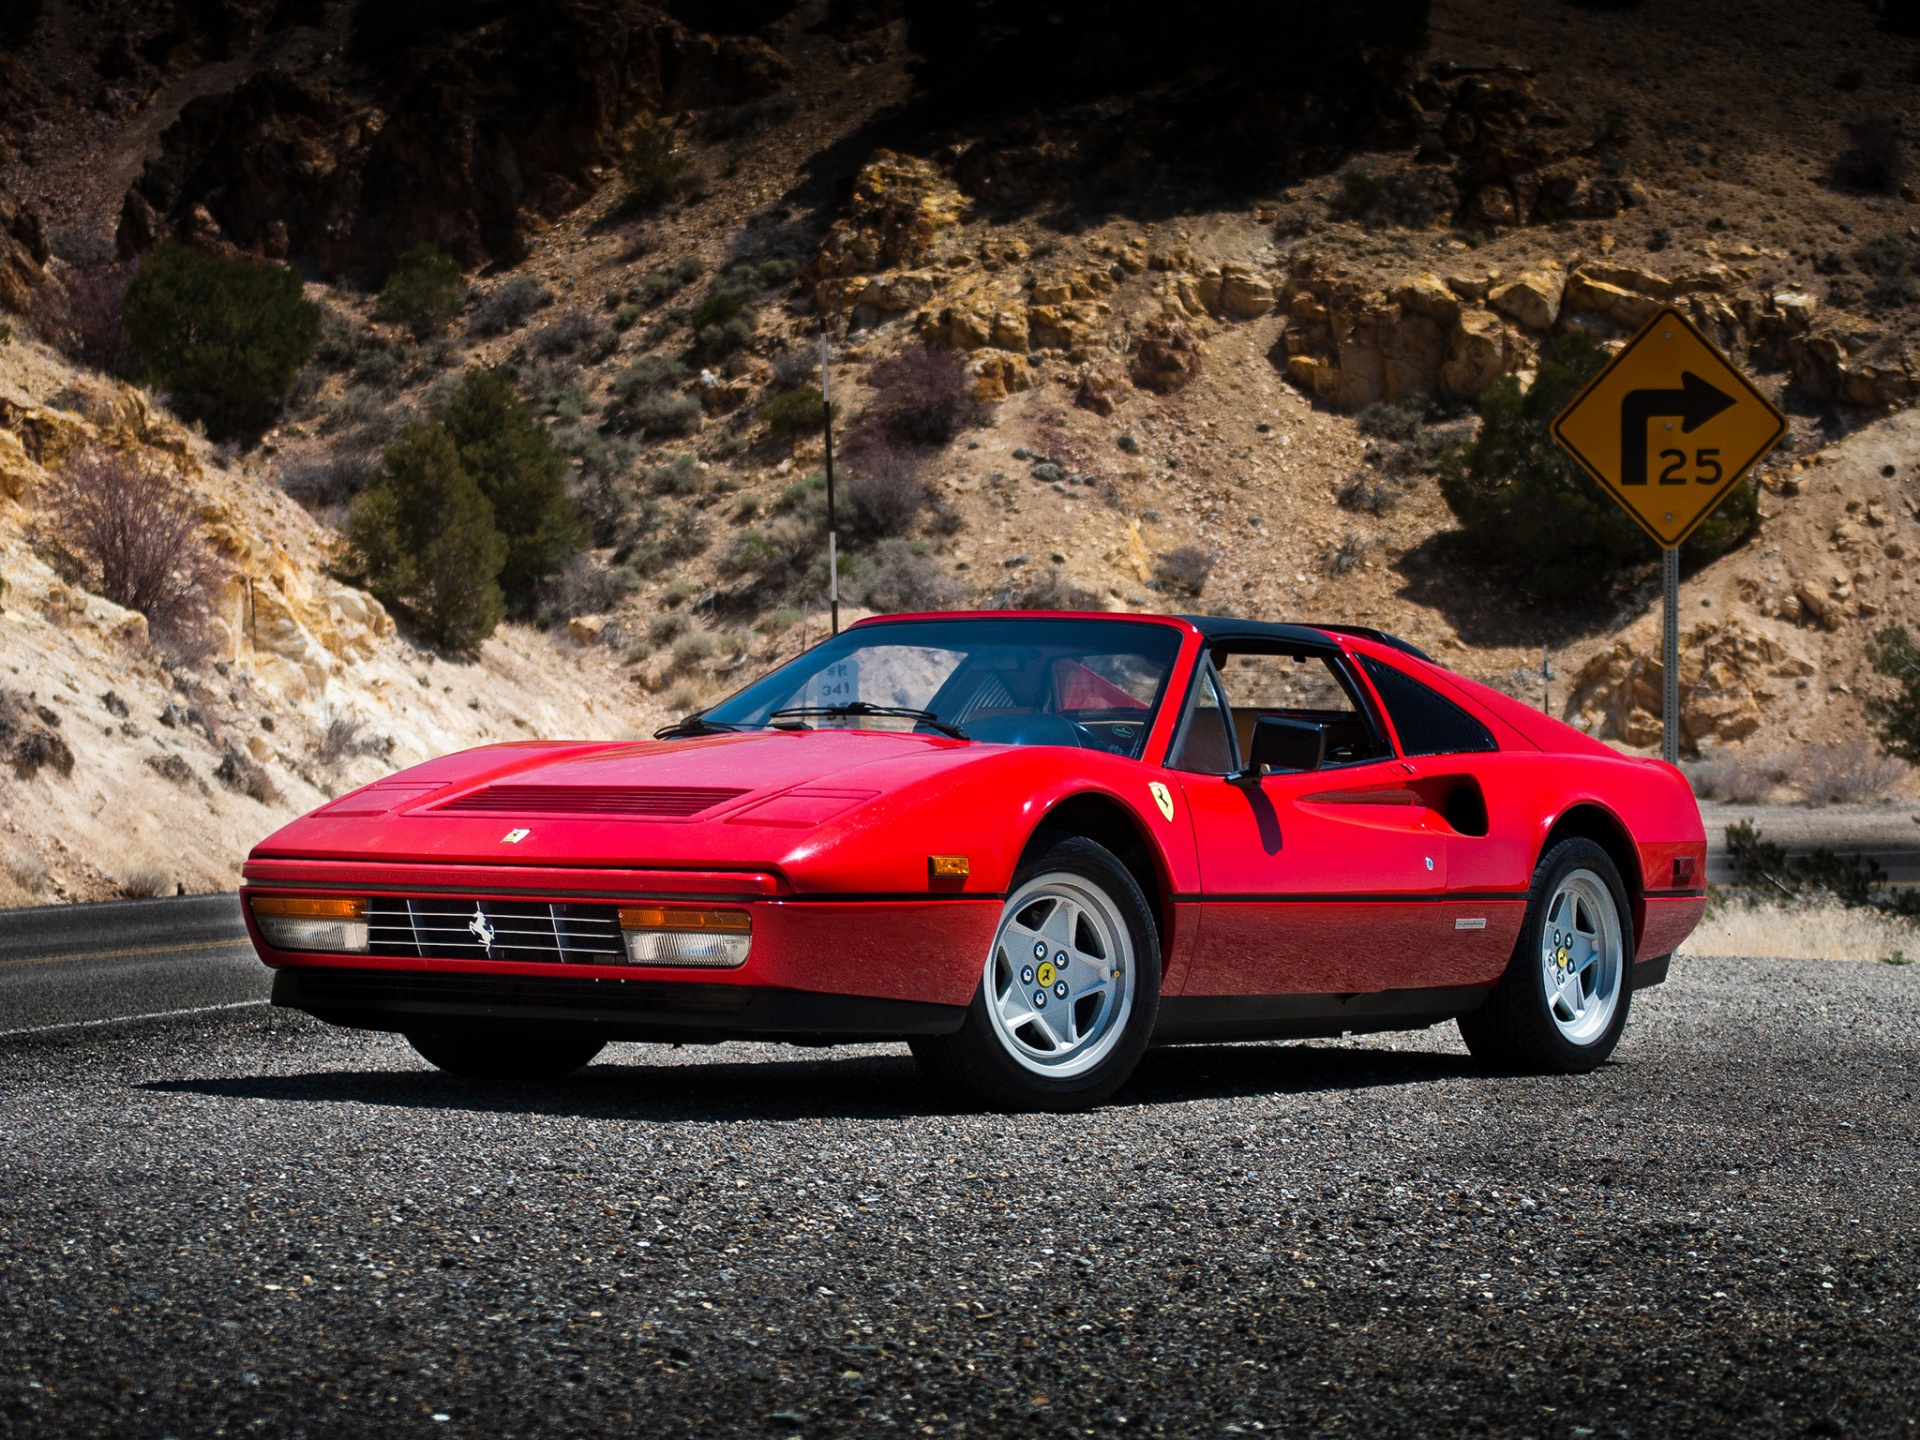 Ferrari 328 Wallpapers